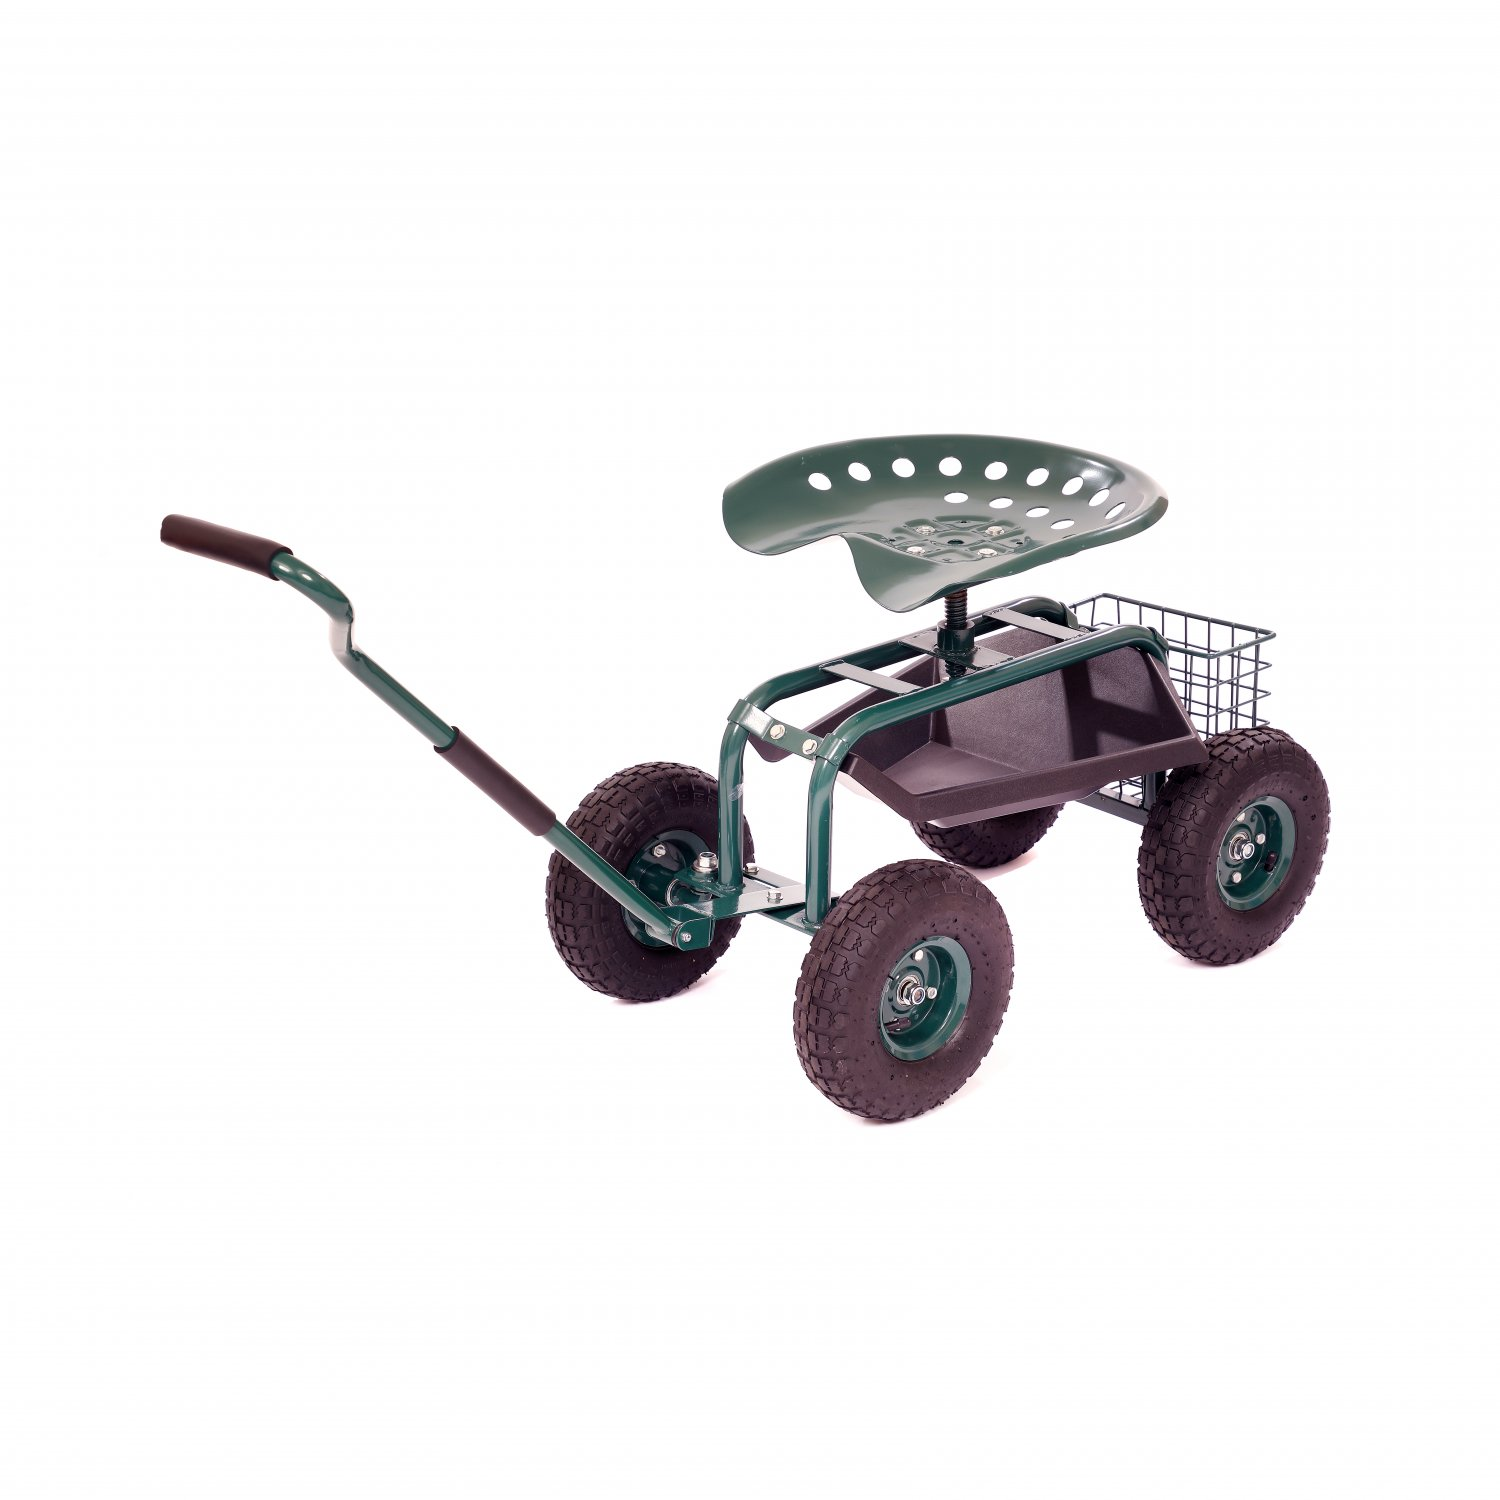 Outdoor Rolling Garden Seat Wheeled Stool W Tool Tray Basket 46 99 Oypla Stocking The Very Best In Toys Electrical Furniture Homeware Garden Gifts And Much More